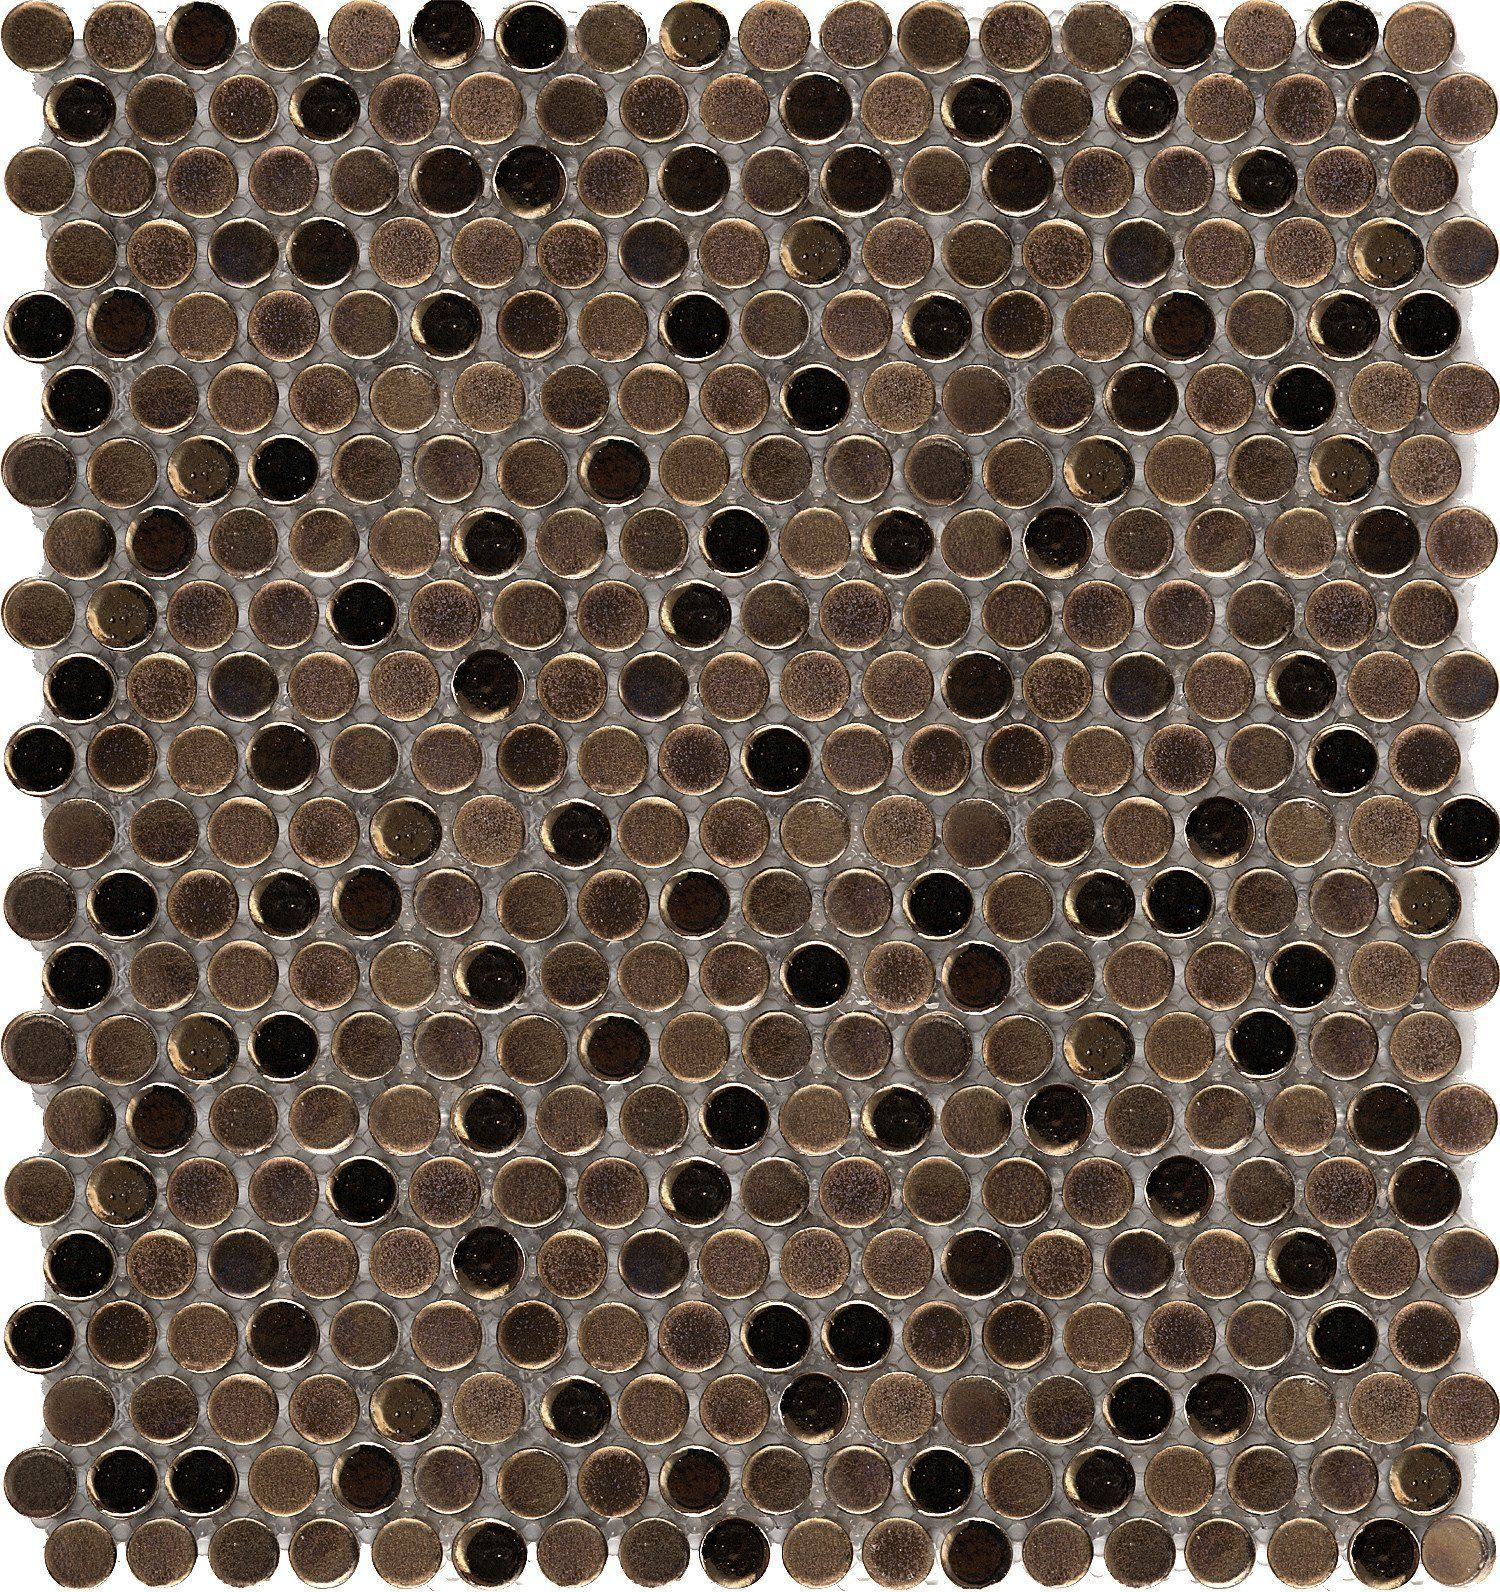 Emser Tile Confetti Penny Round 8mm Bronze Mixed Finish Mosaic On